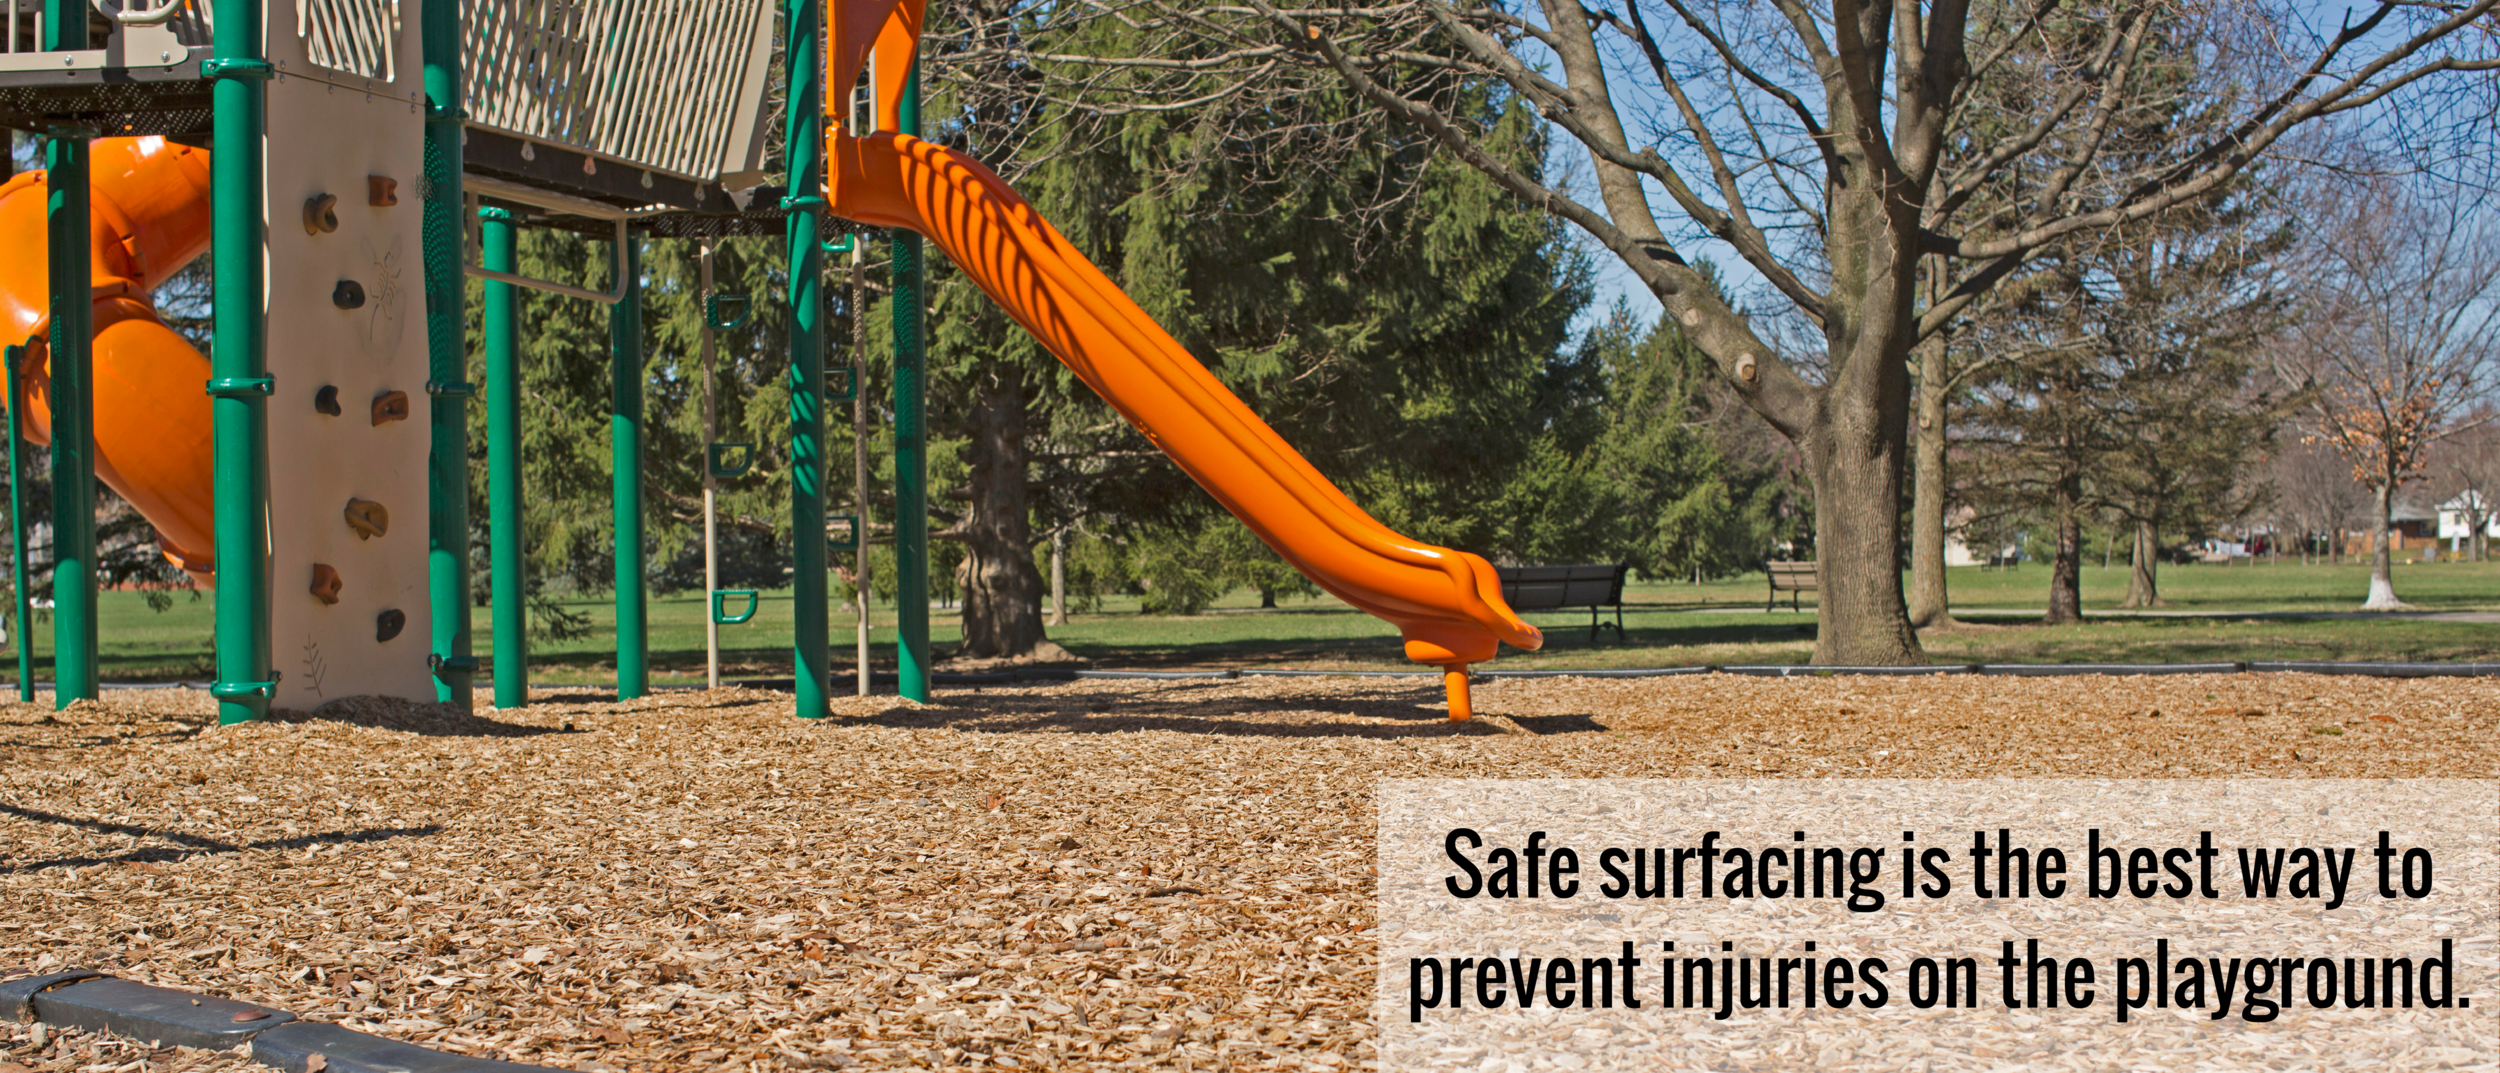 playgrounds-safe-surfaces-fact-graphic-photo.png